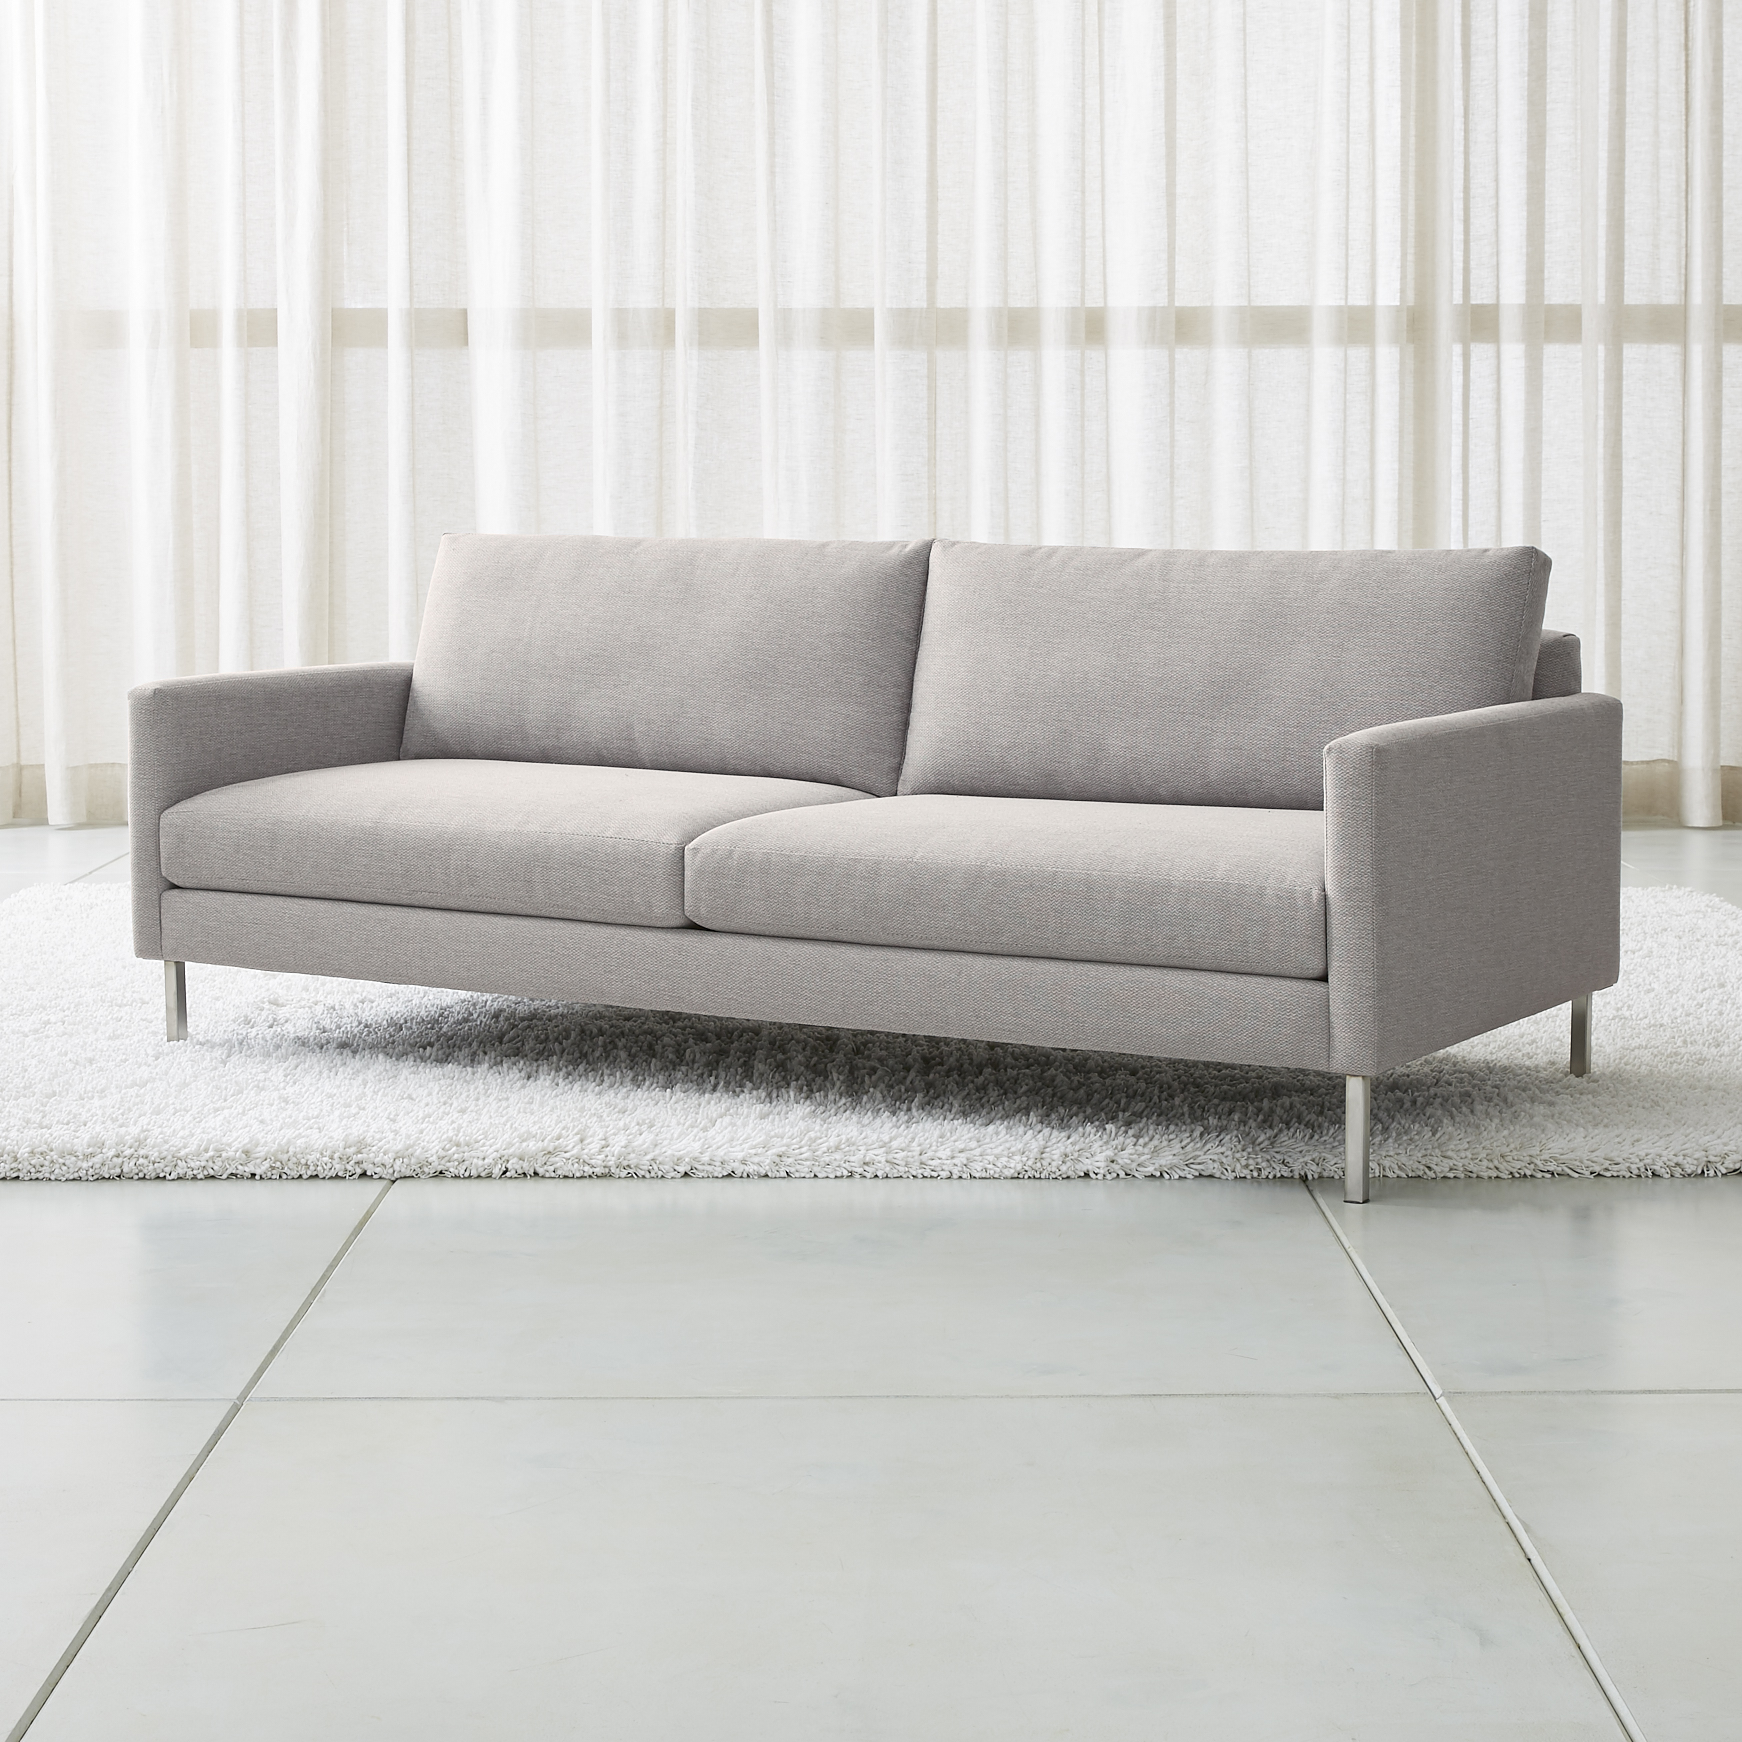 Sofa Cushions Near Me How To Buy A Sofa Online And The Best Companies To Buy